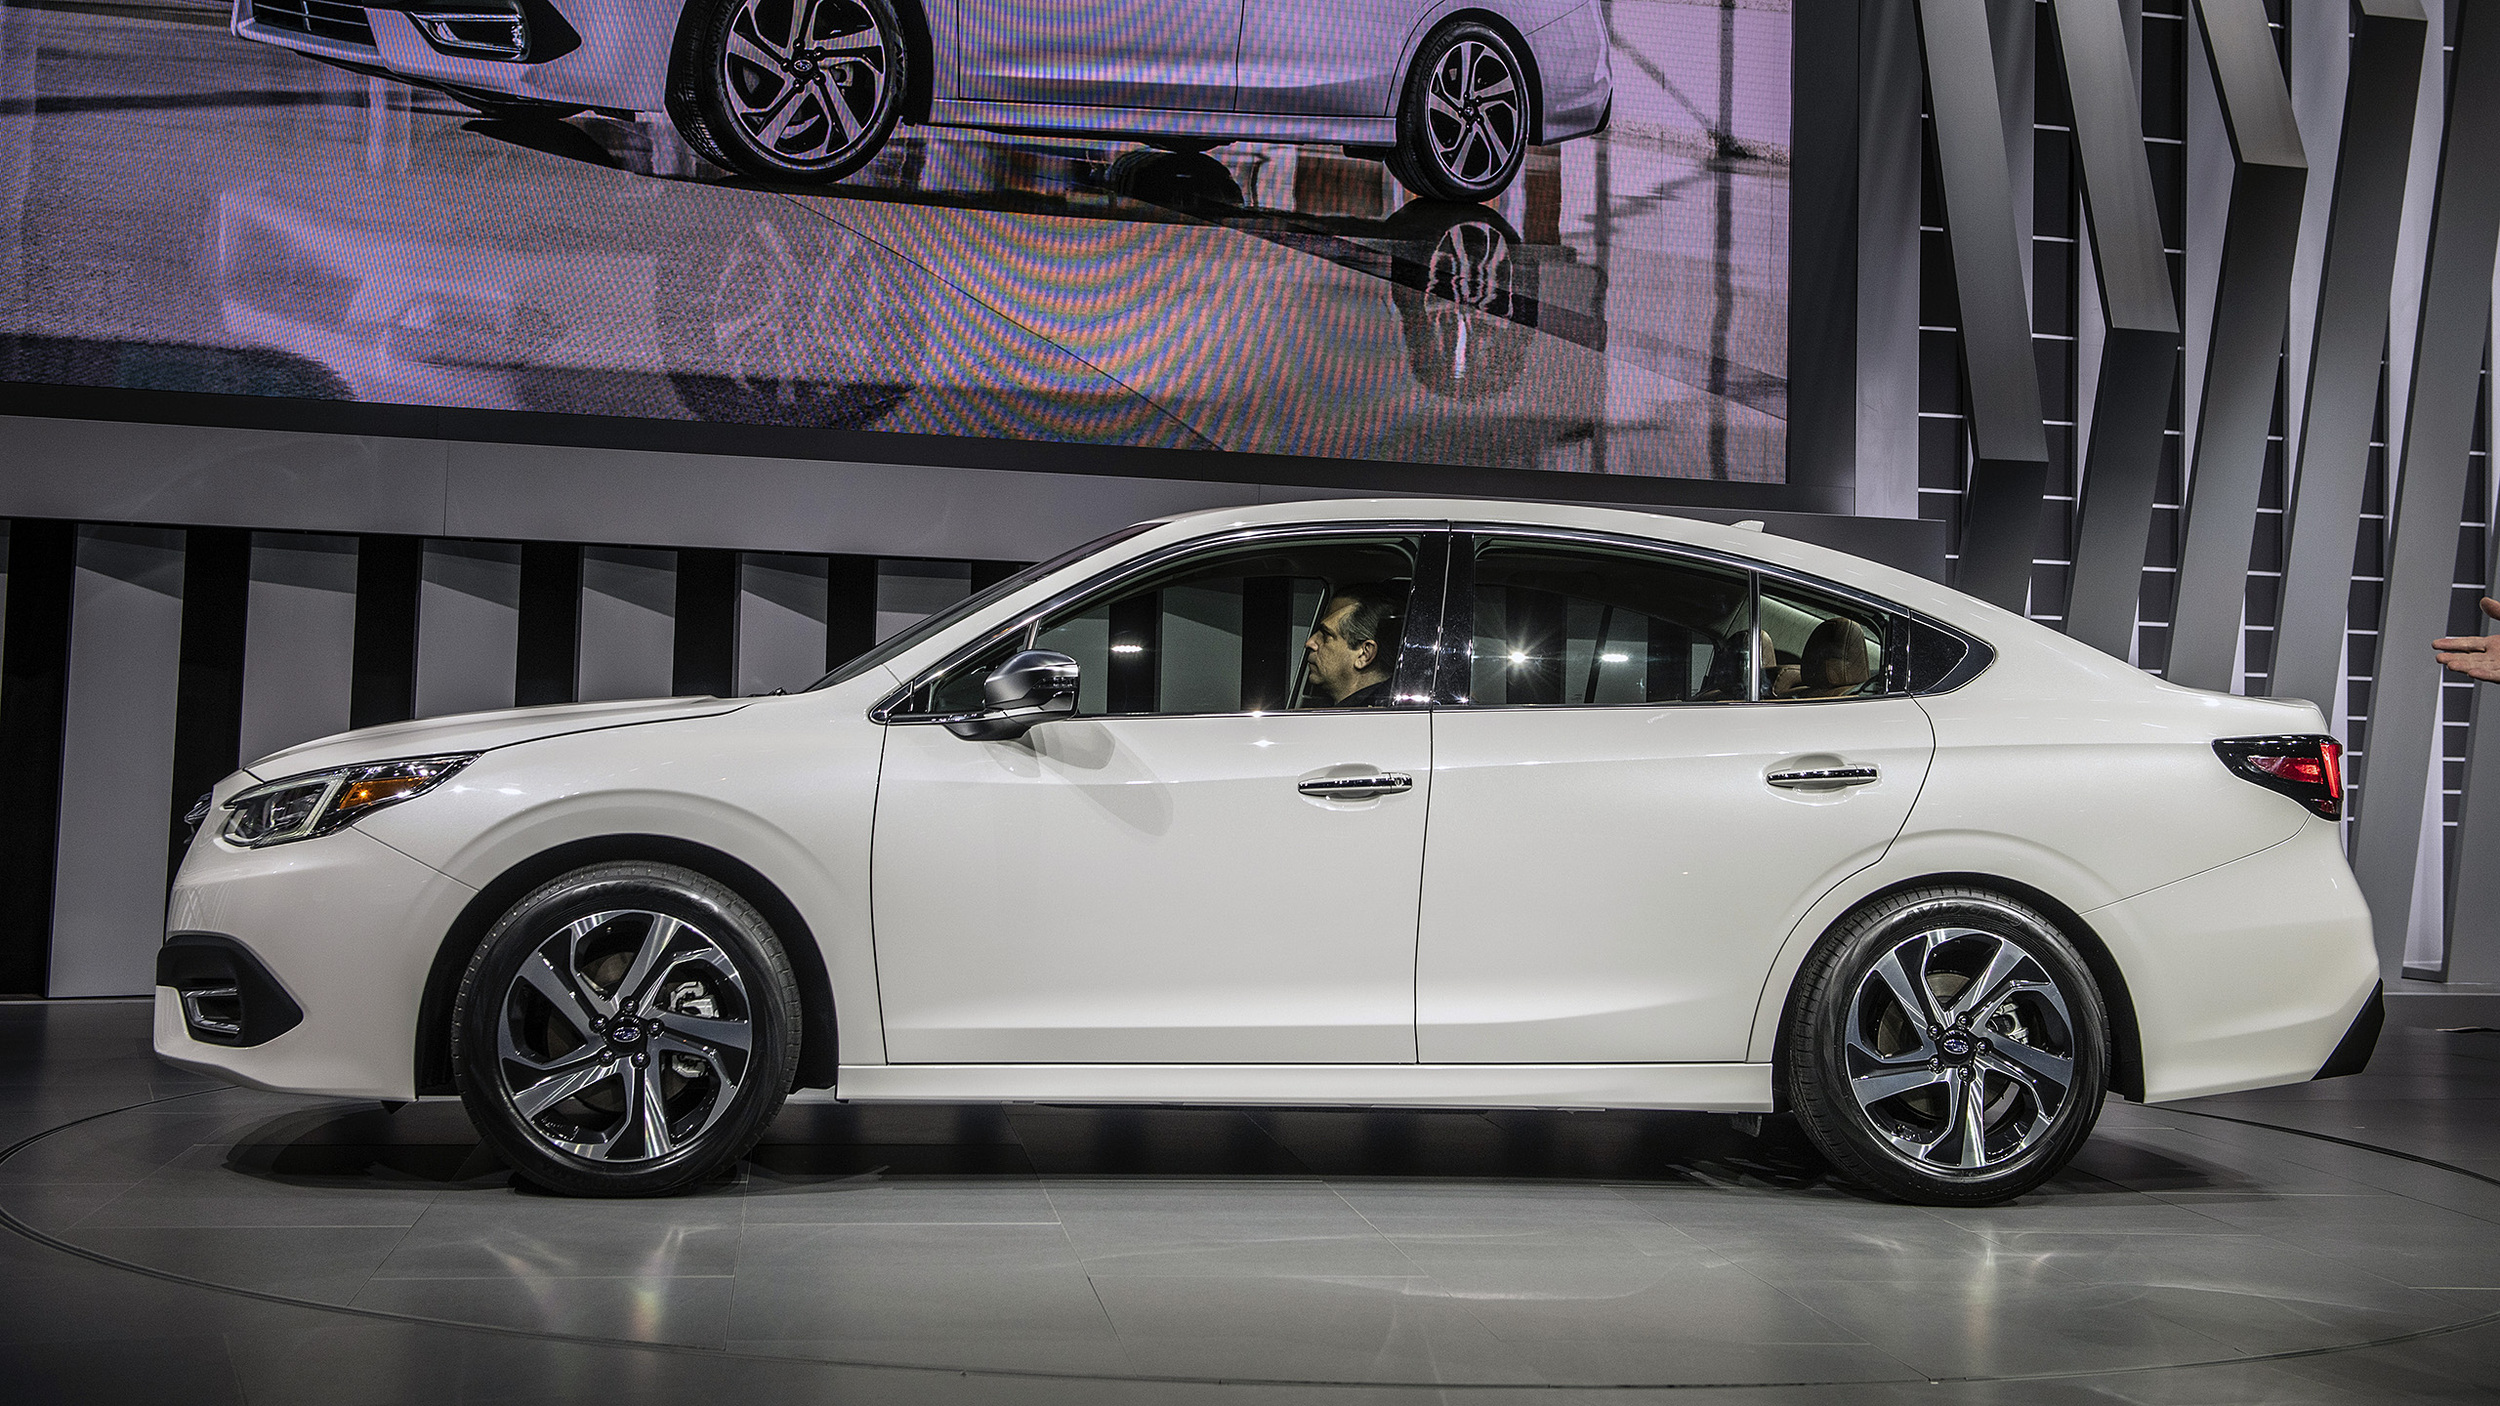 Gas Prices In Chicago >> 2020 Subaru Legacy revealed at Chicago Auto Show | Autoblog